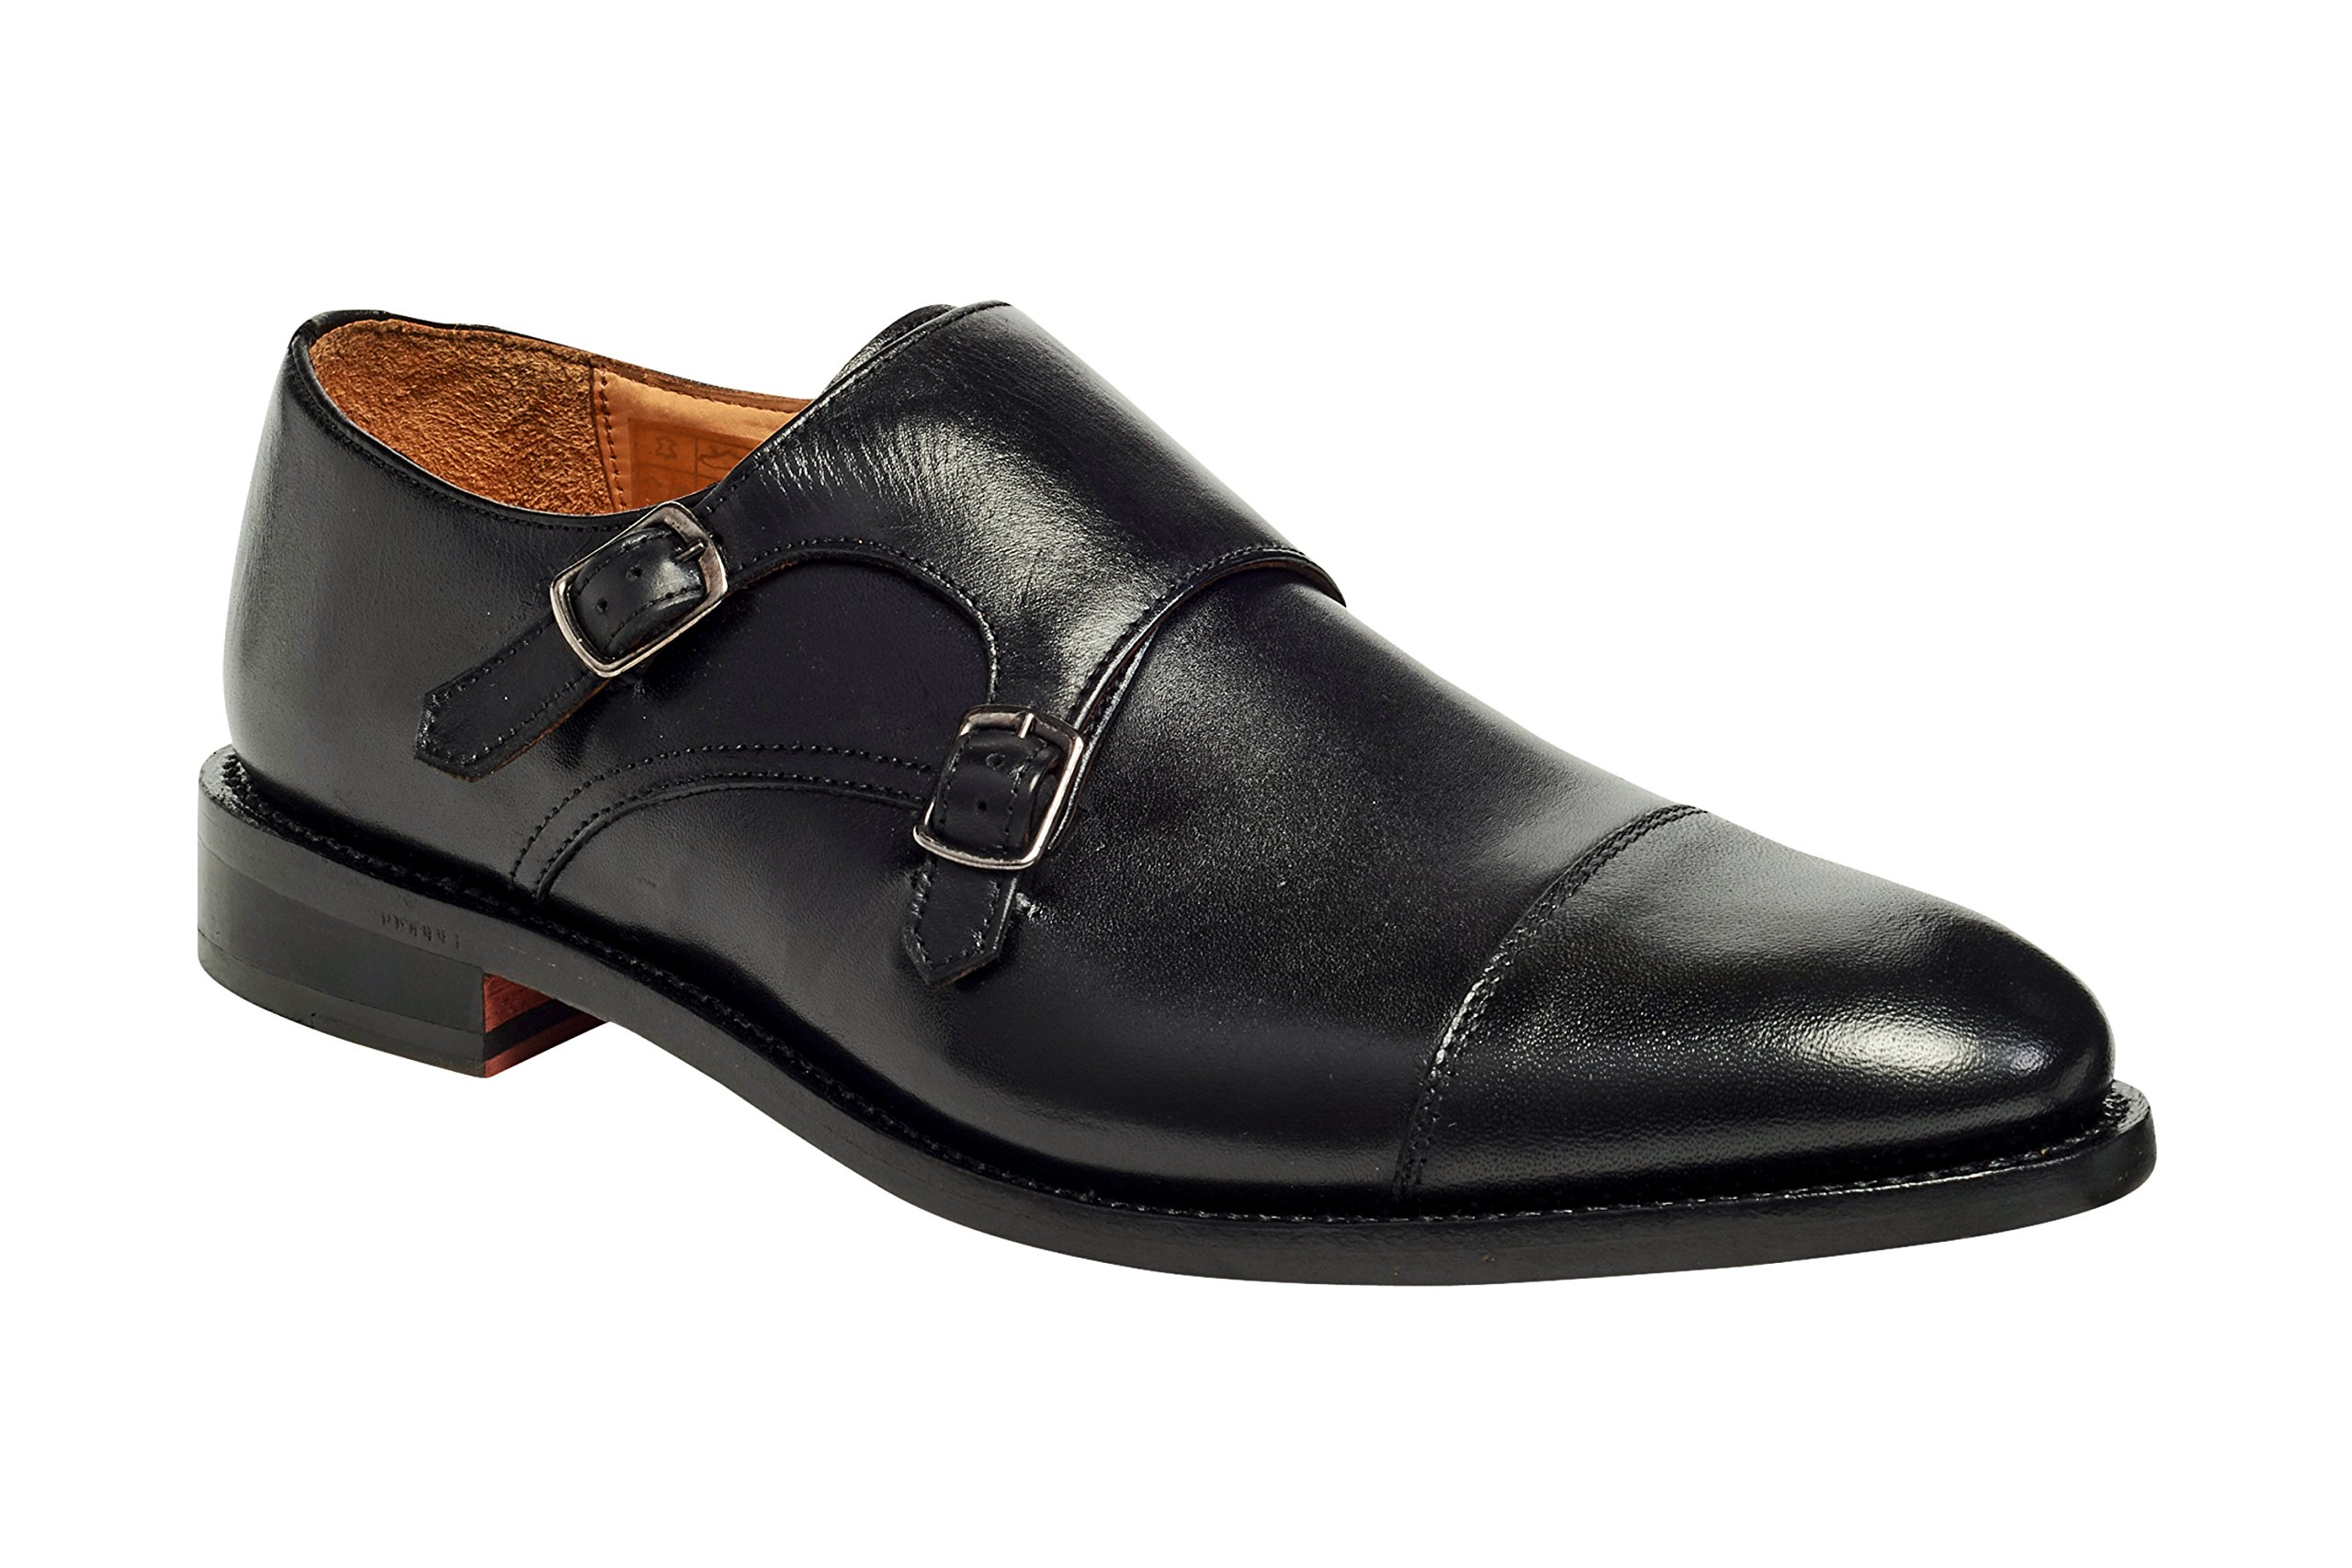 Anthony Veer Men's Roosevelt II Oxford Double Monk Strap Leather Dress Shoes In Goodyear Welted Construction (10.5 D, Black) by Anthony Veer